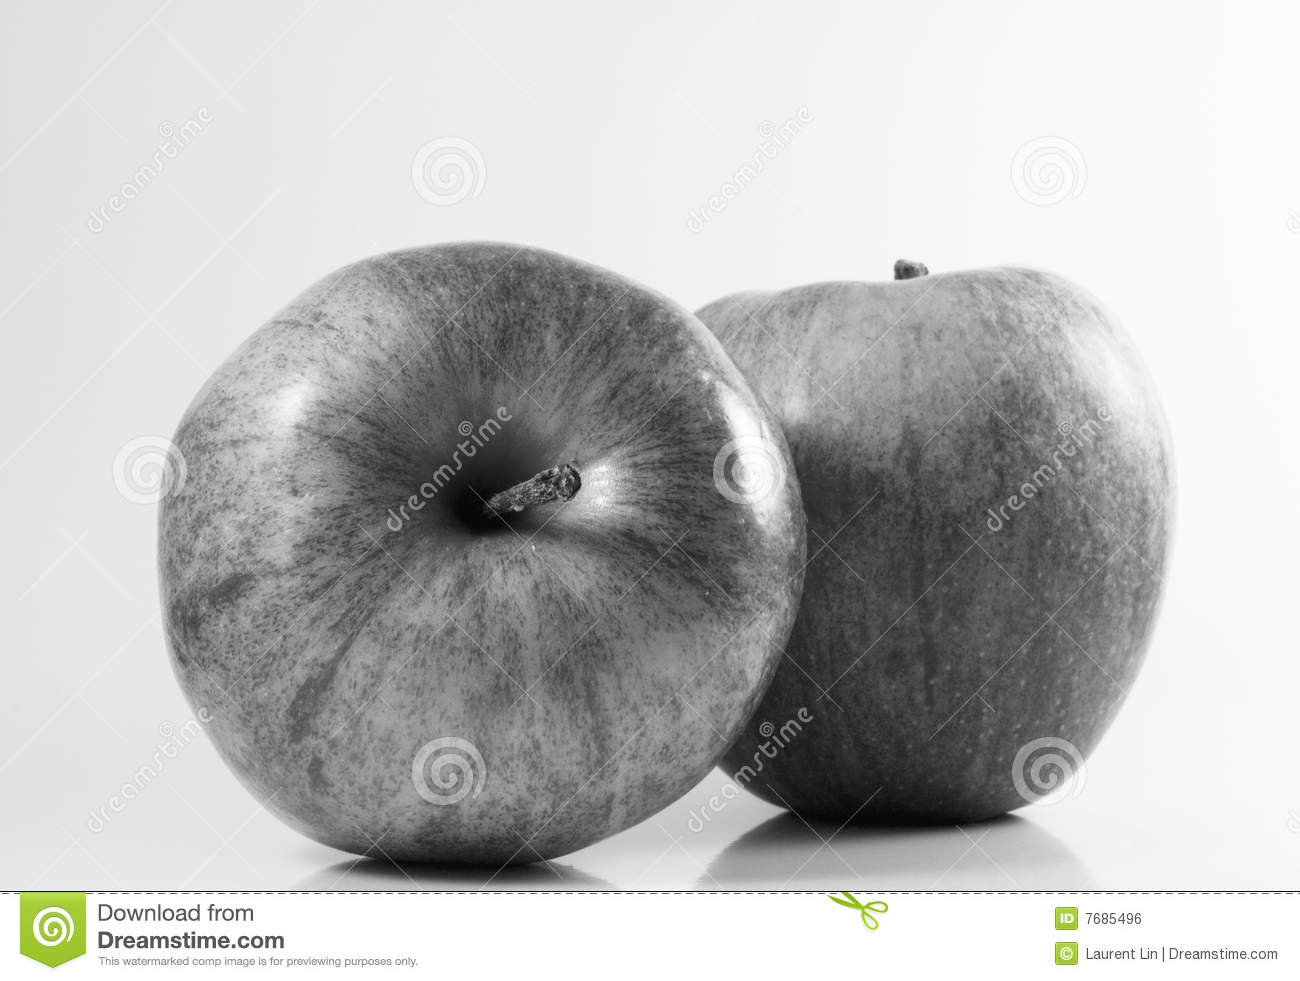 Abstract apple slices stock image image of apple repetitive 9765723 black white apple royalty free stock image thecheapjerseys